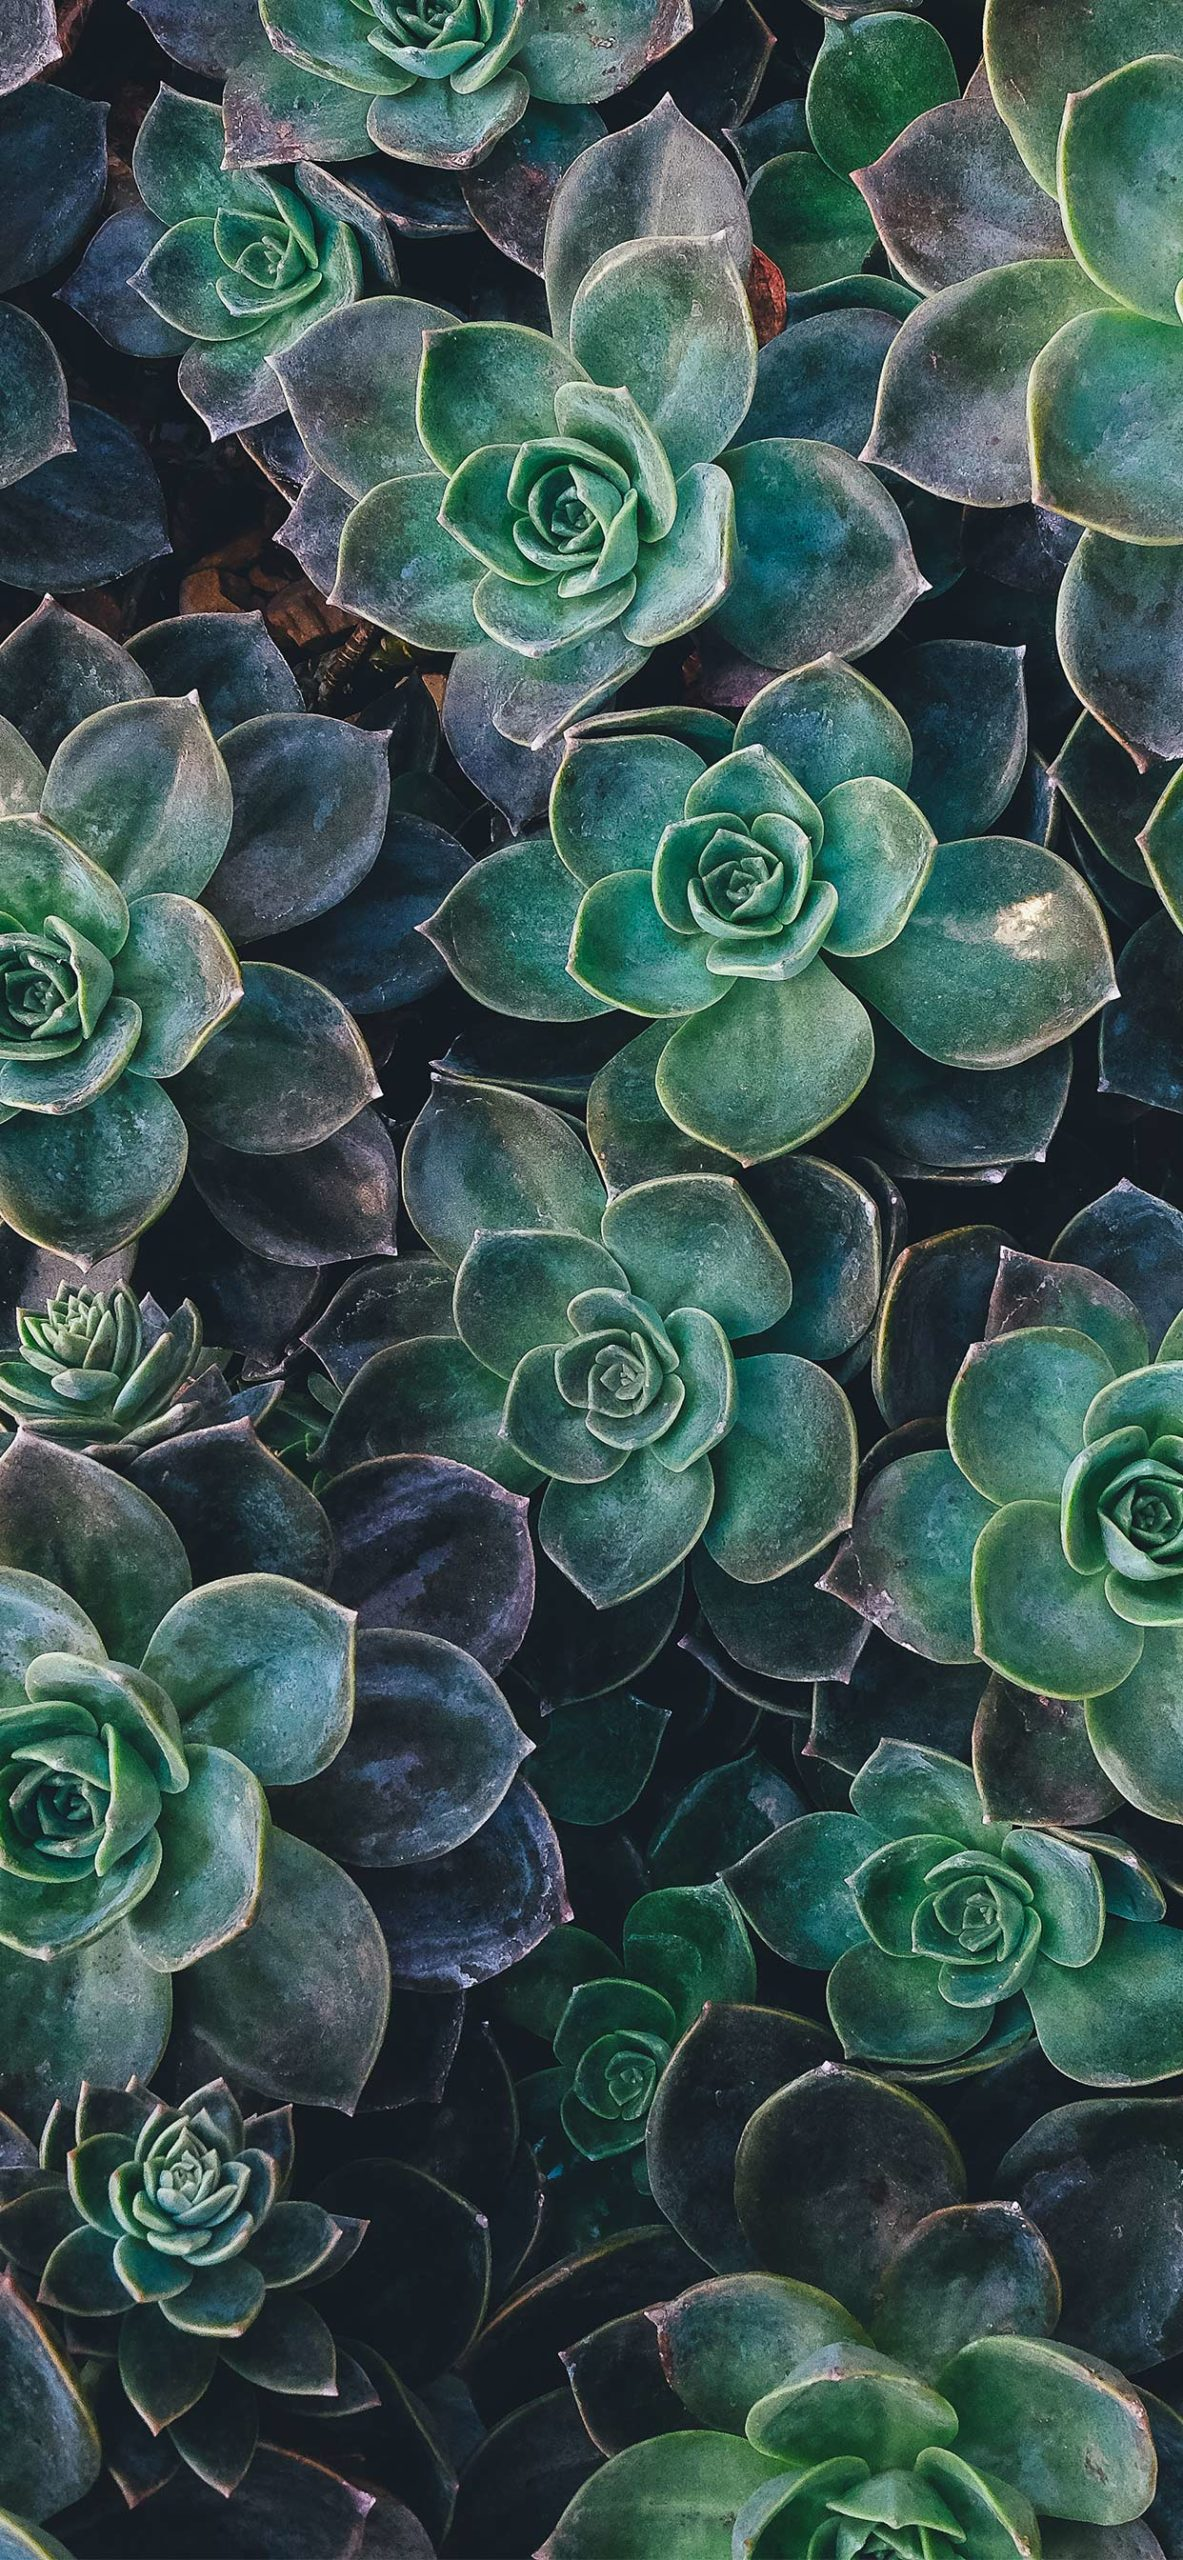 iphone wallpapers succulents3 scaled Succulents